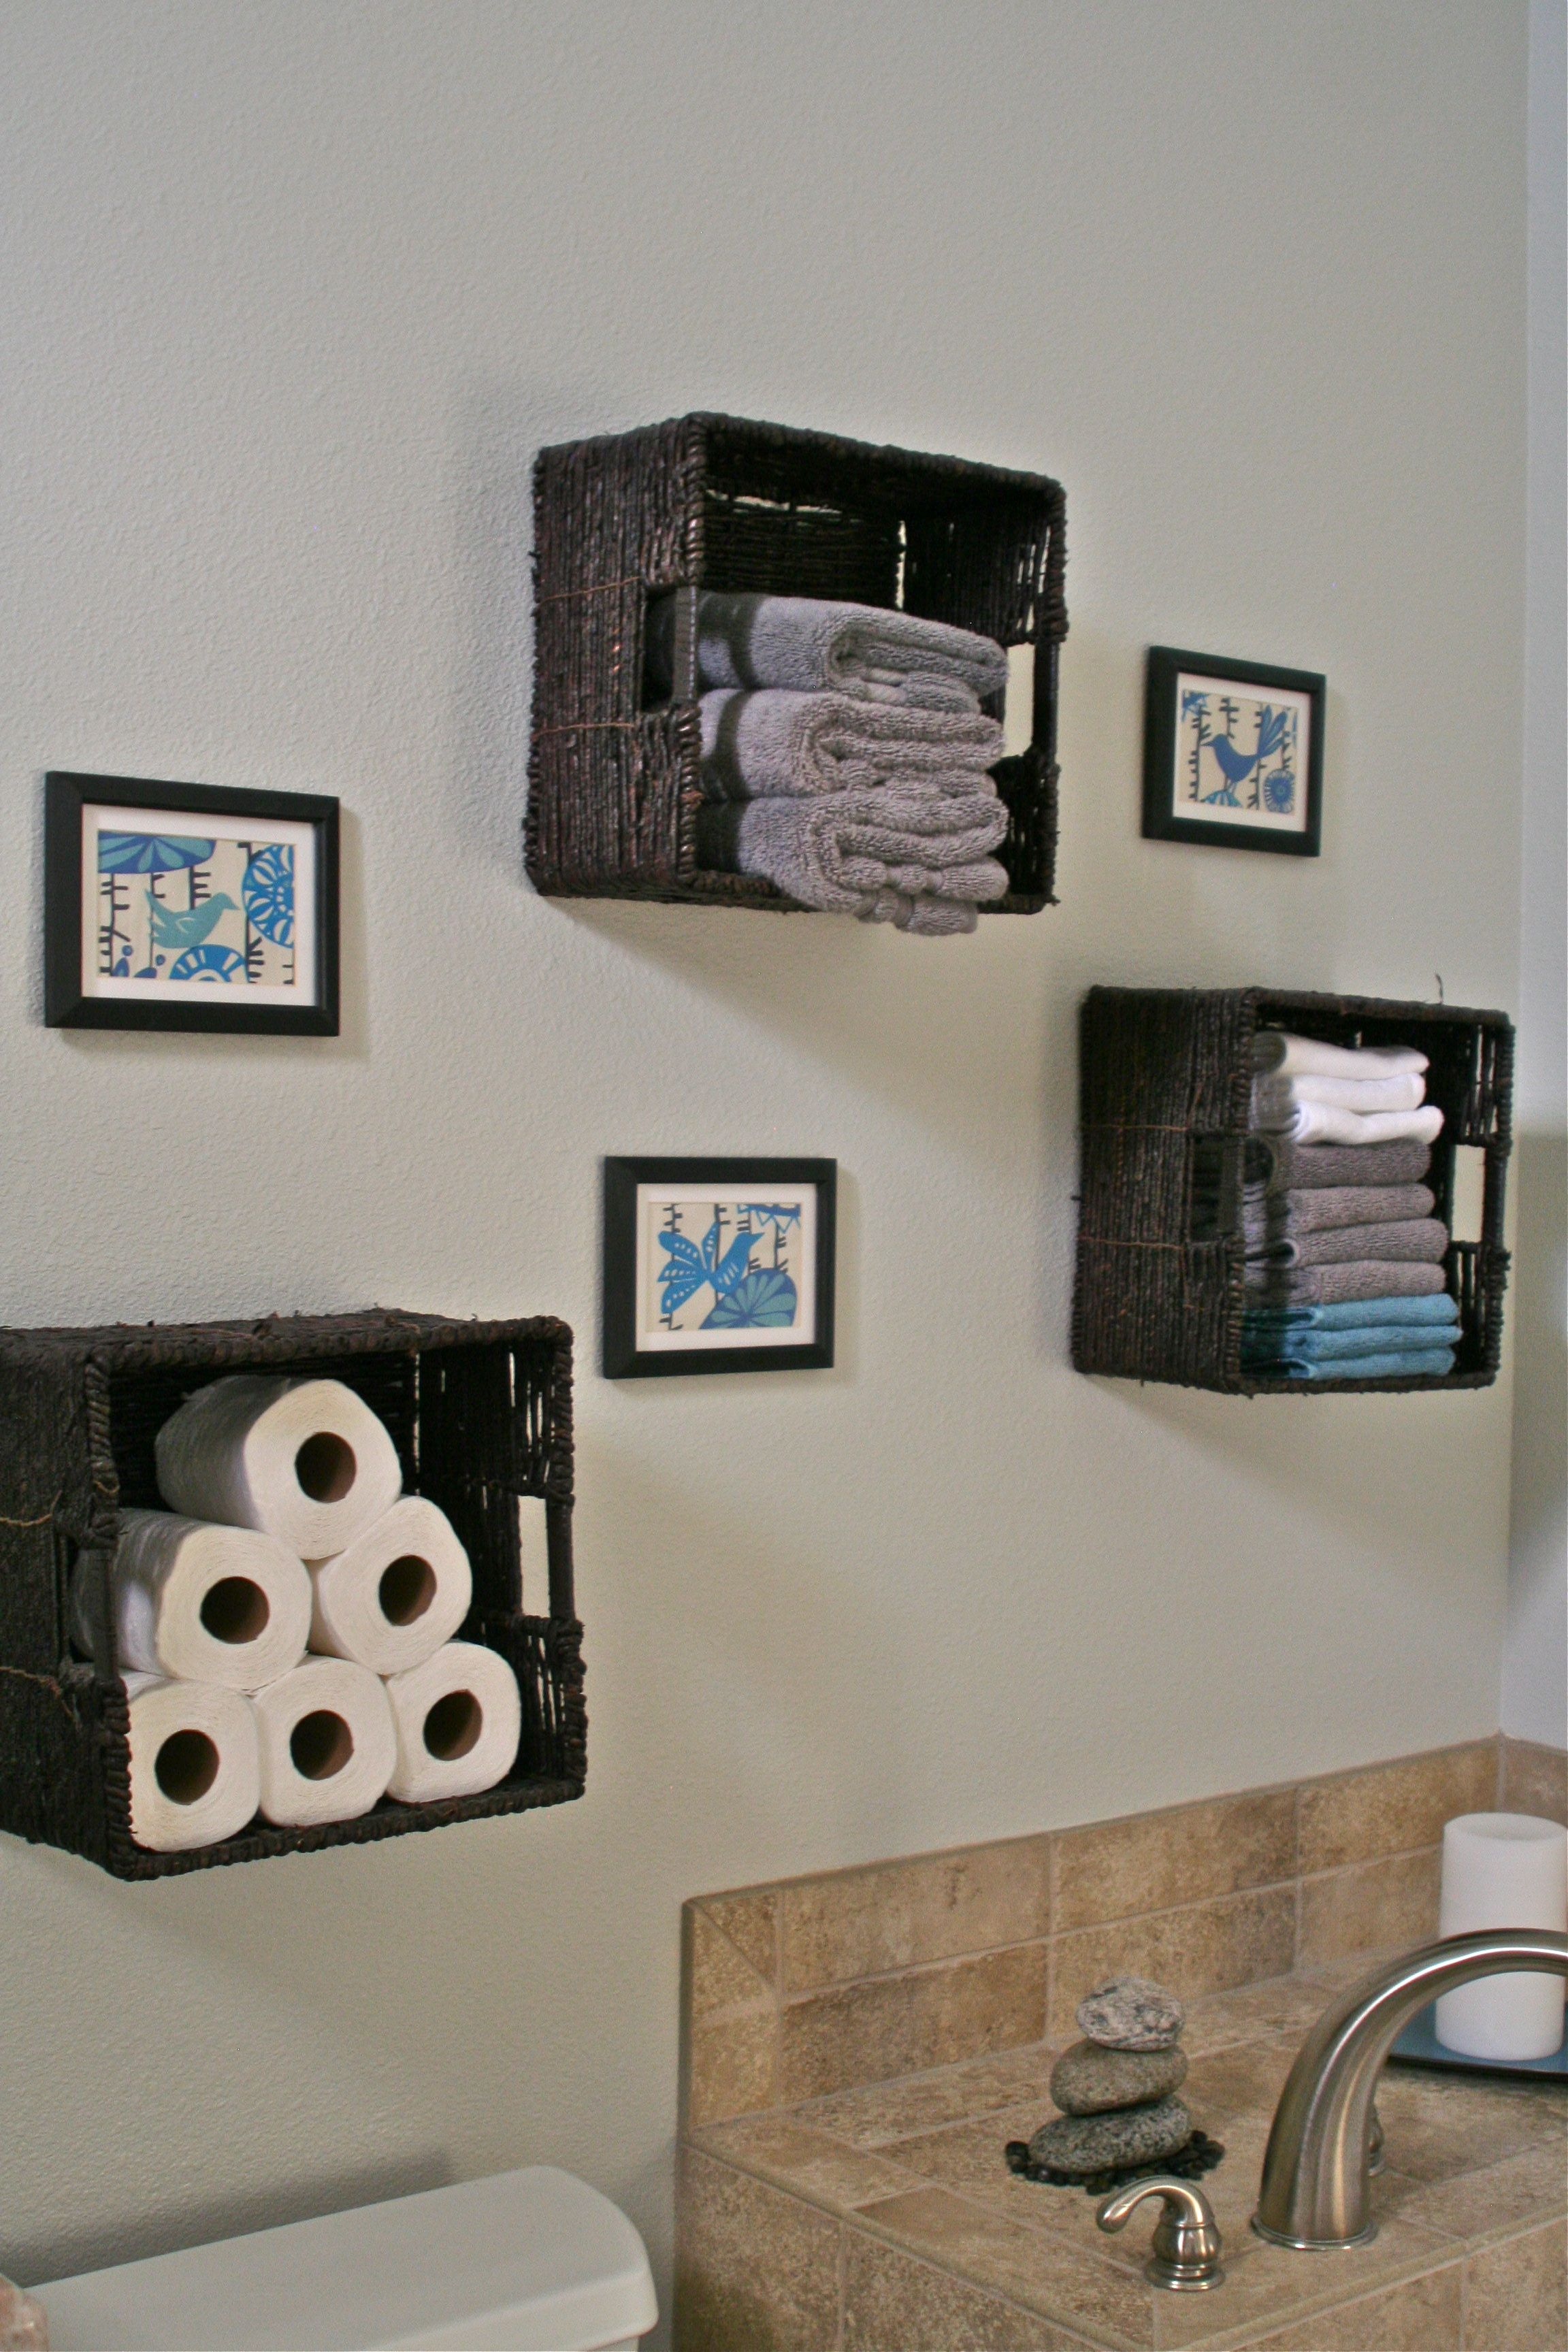 Bathroom Storage Baskets For Towels Toilet Paper Etc Love pertaining to measurements 2304 X 3456